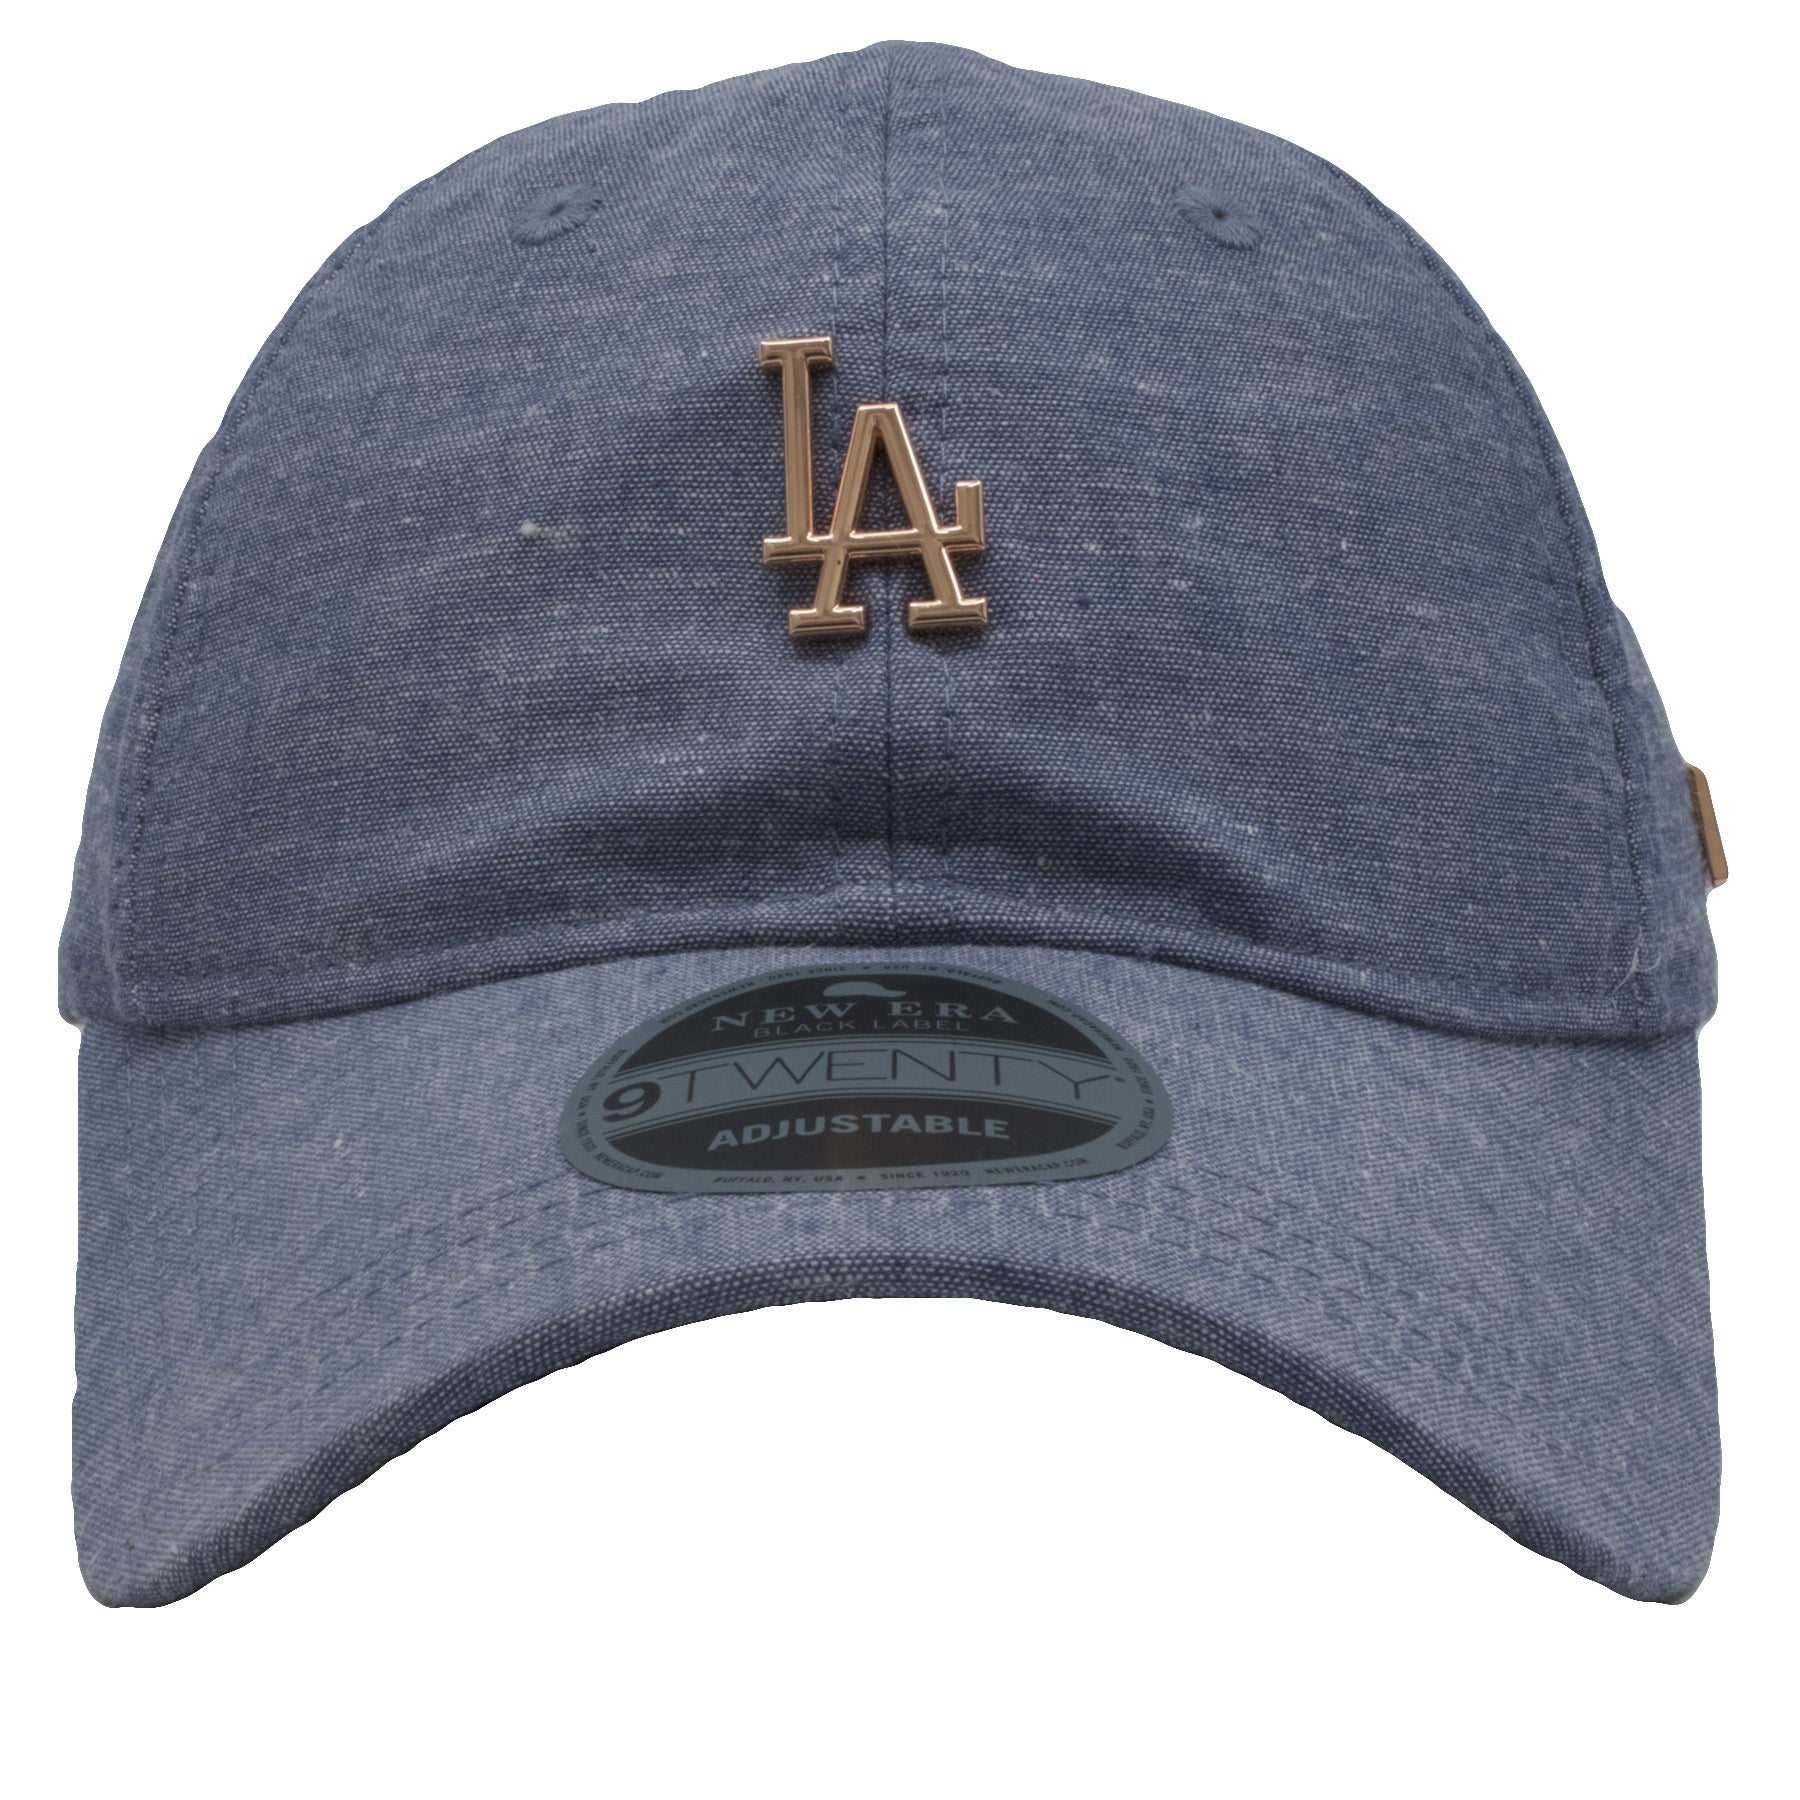 227baa83 Los Angeles Dodgers Denim / Rose Gold Adjustable Dad Hat